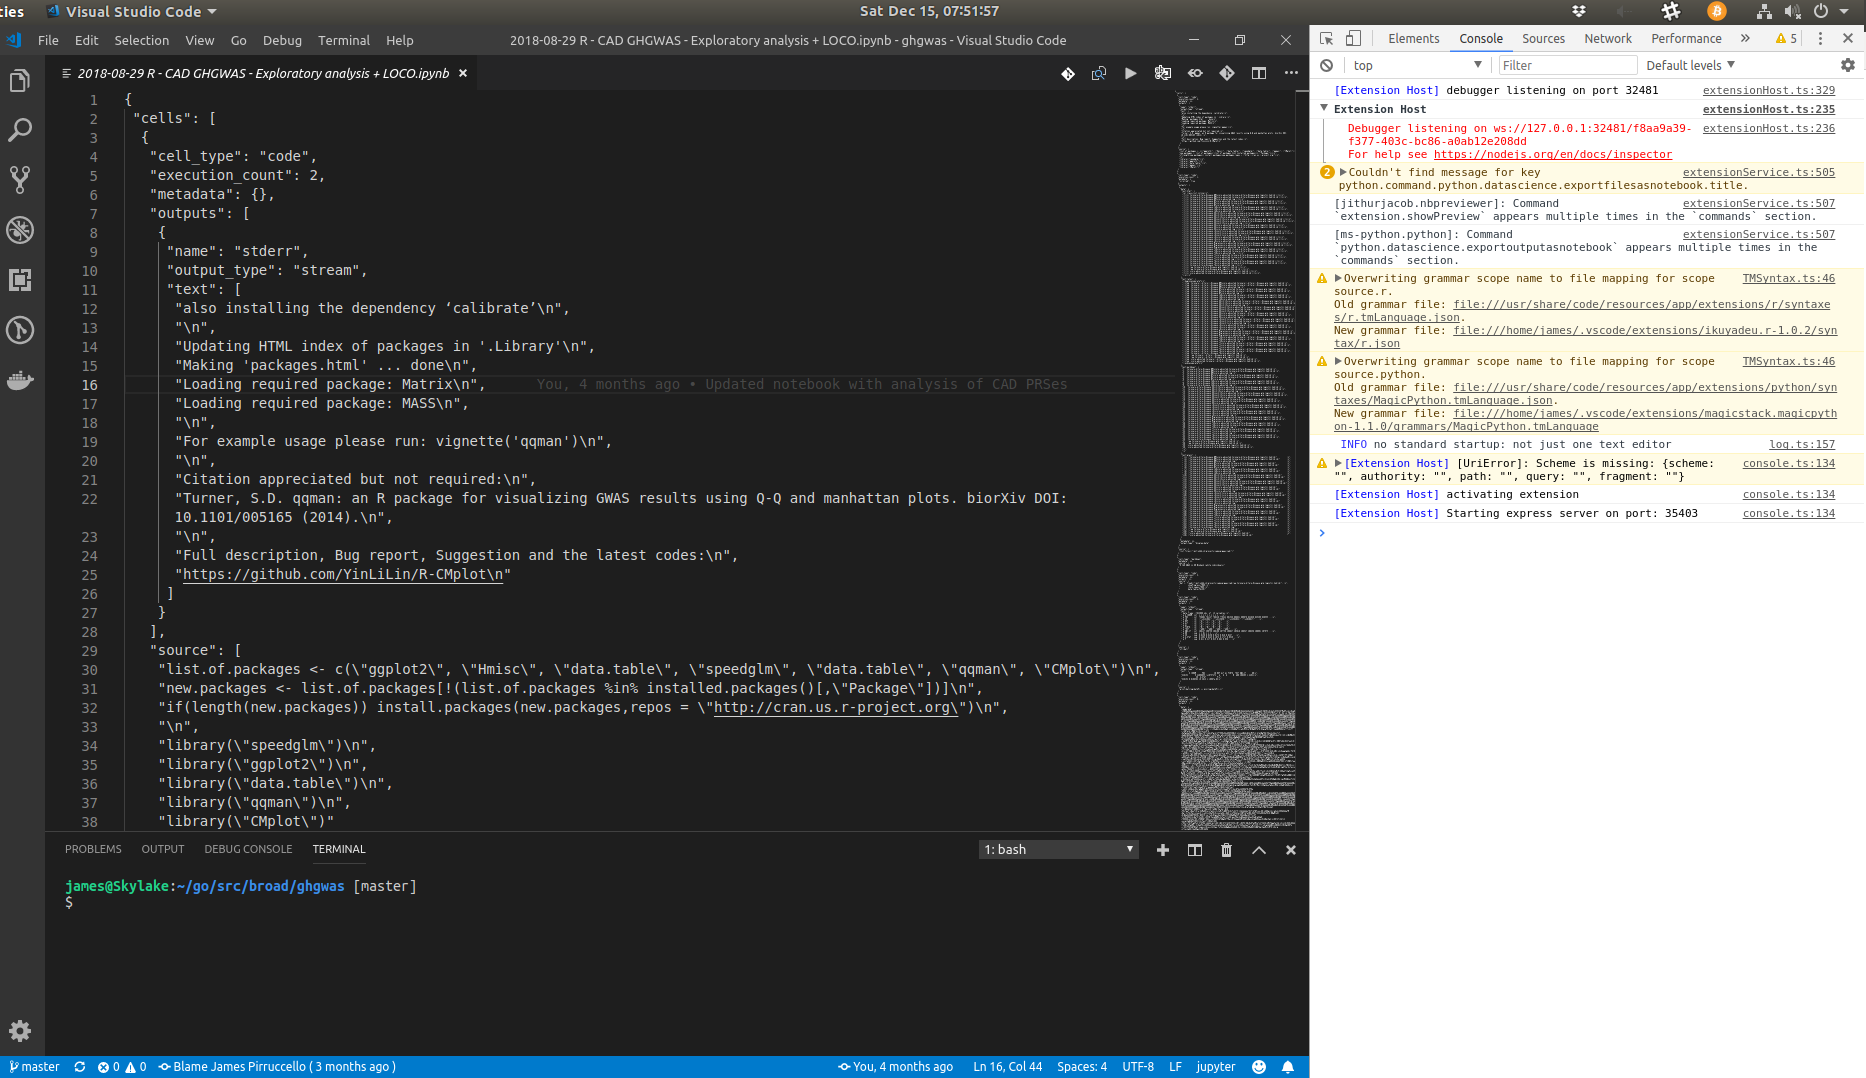 vscode-python conflicts with Jupyter notebook preview